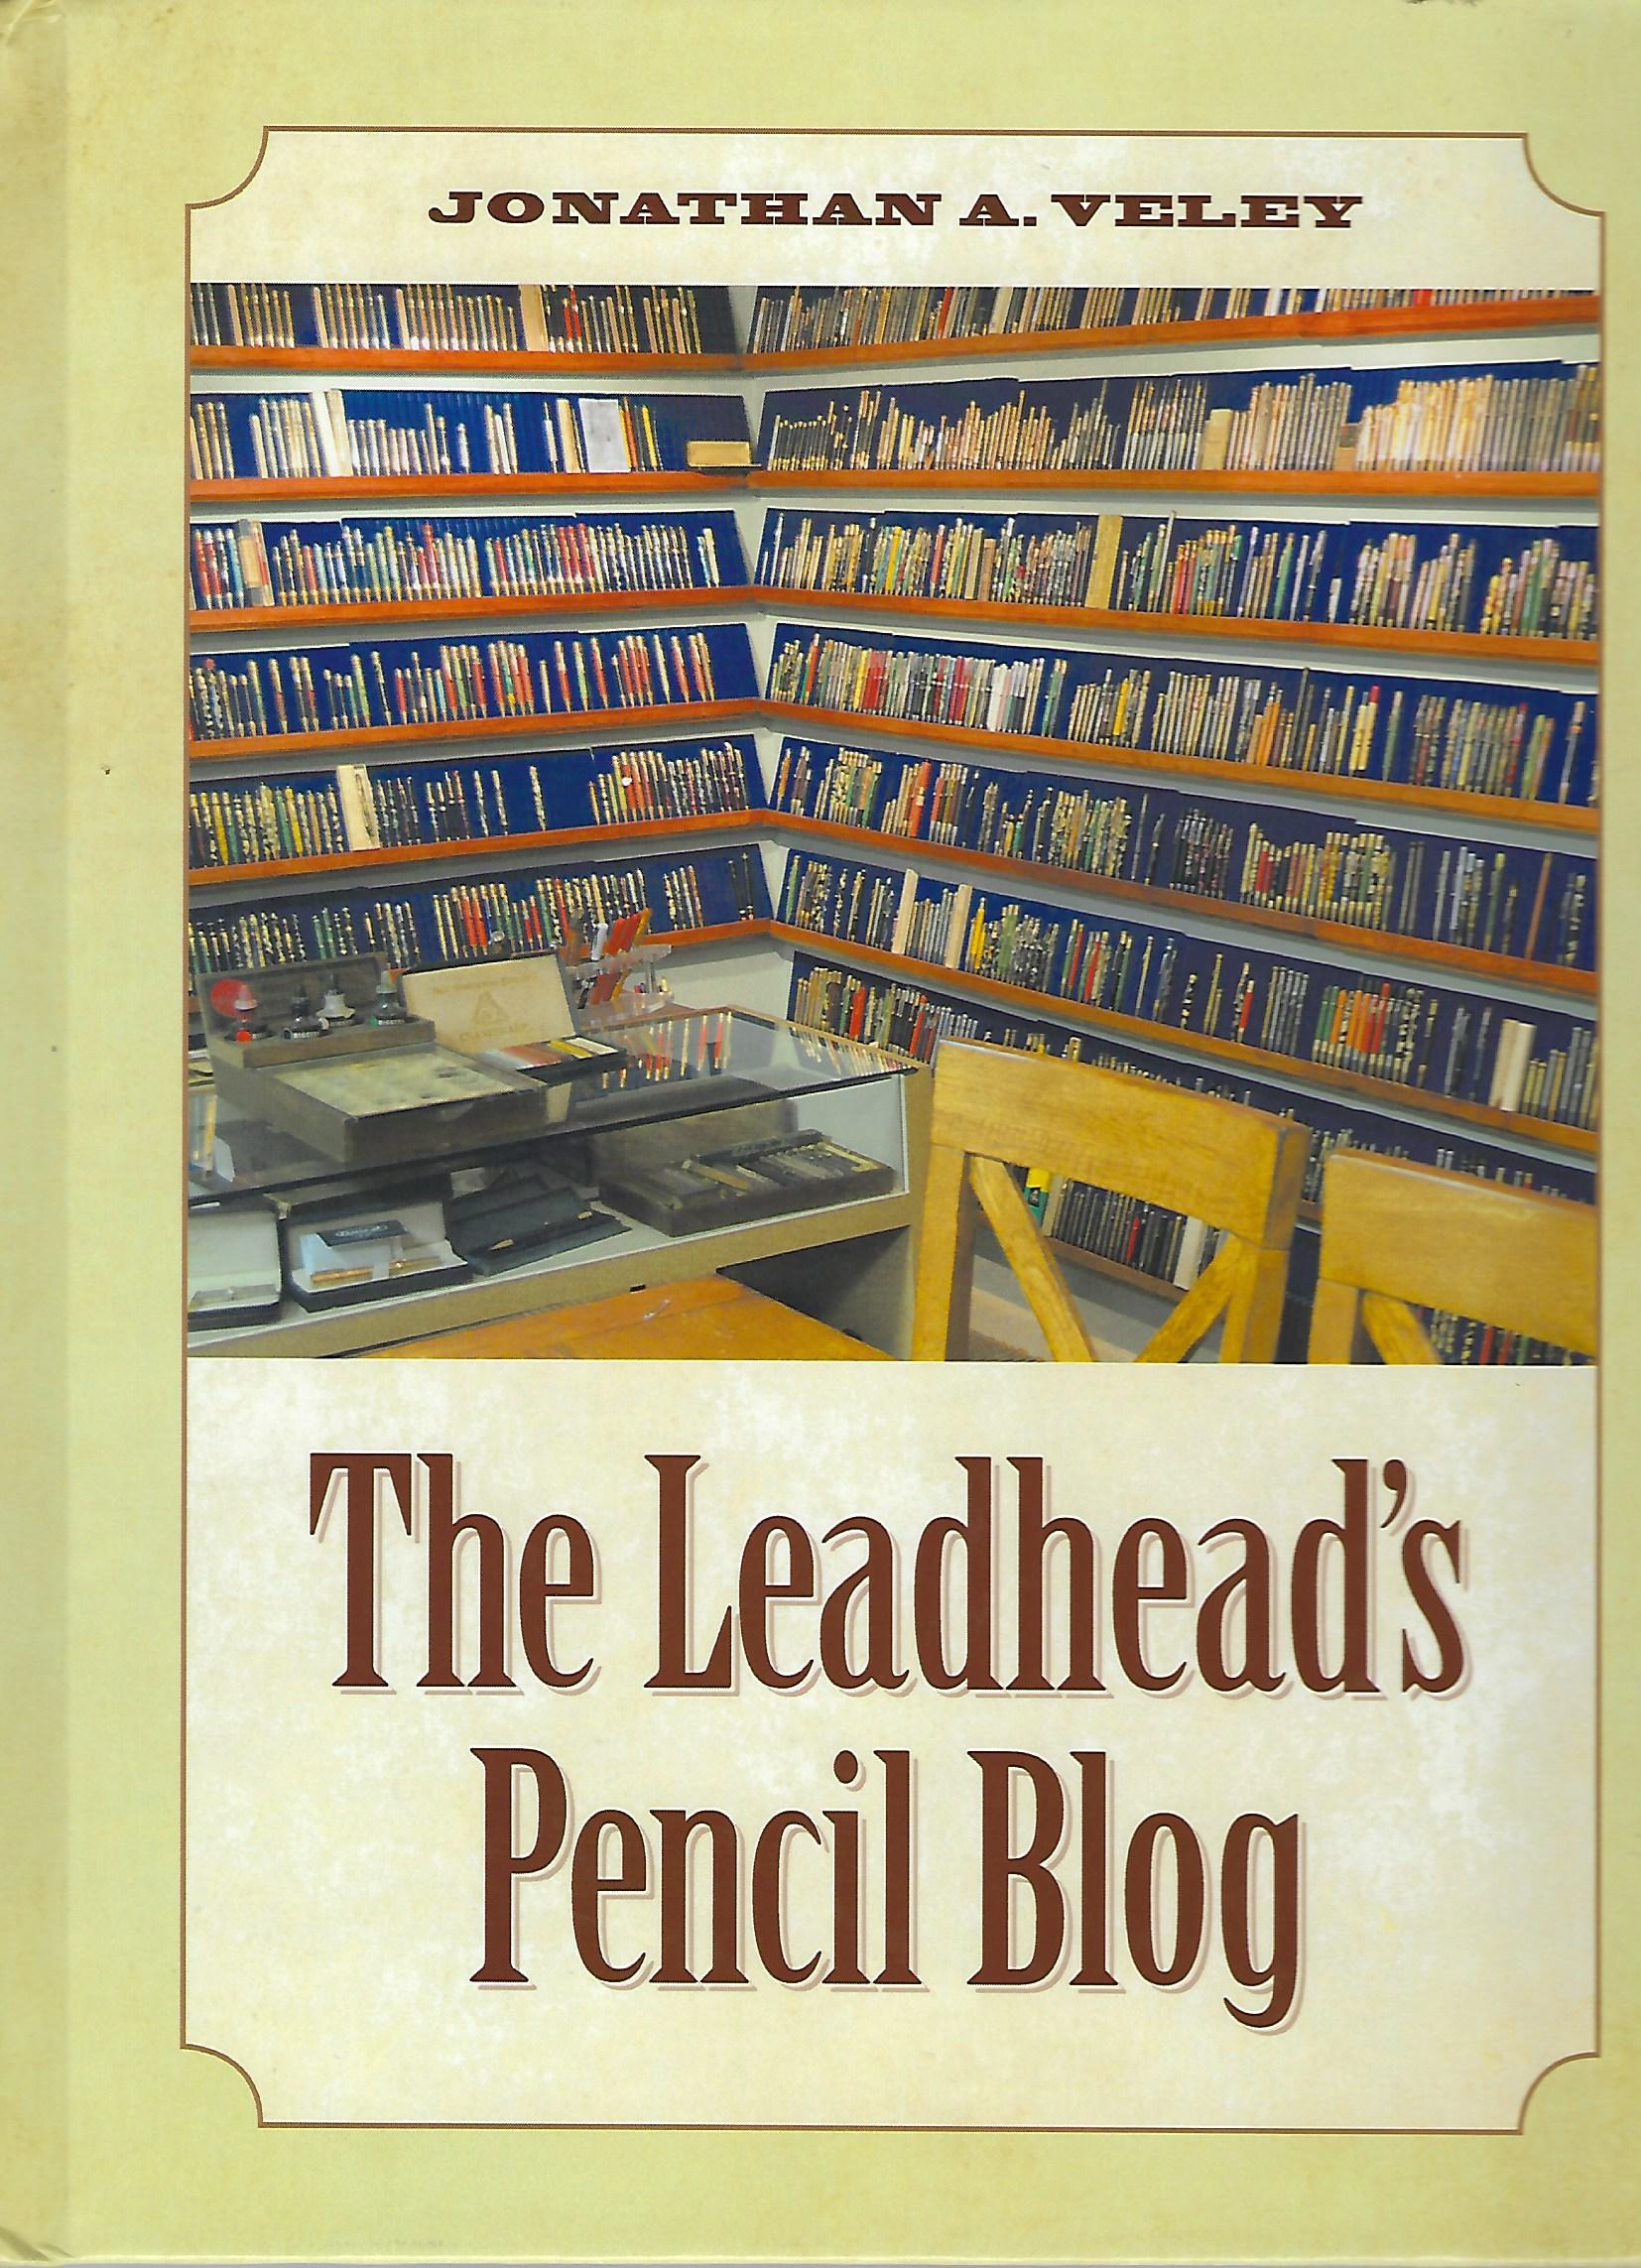 The Leadhead's Pencil Blog (1)